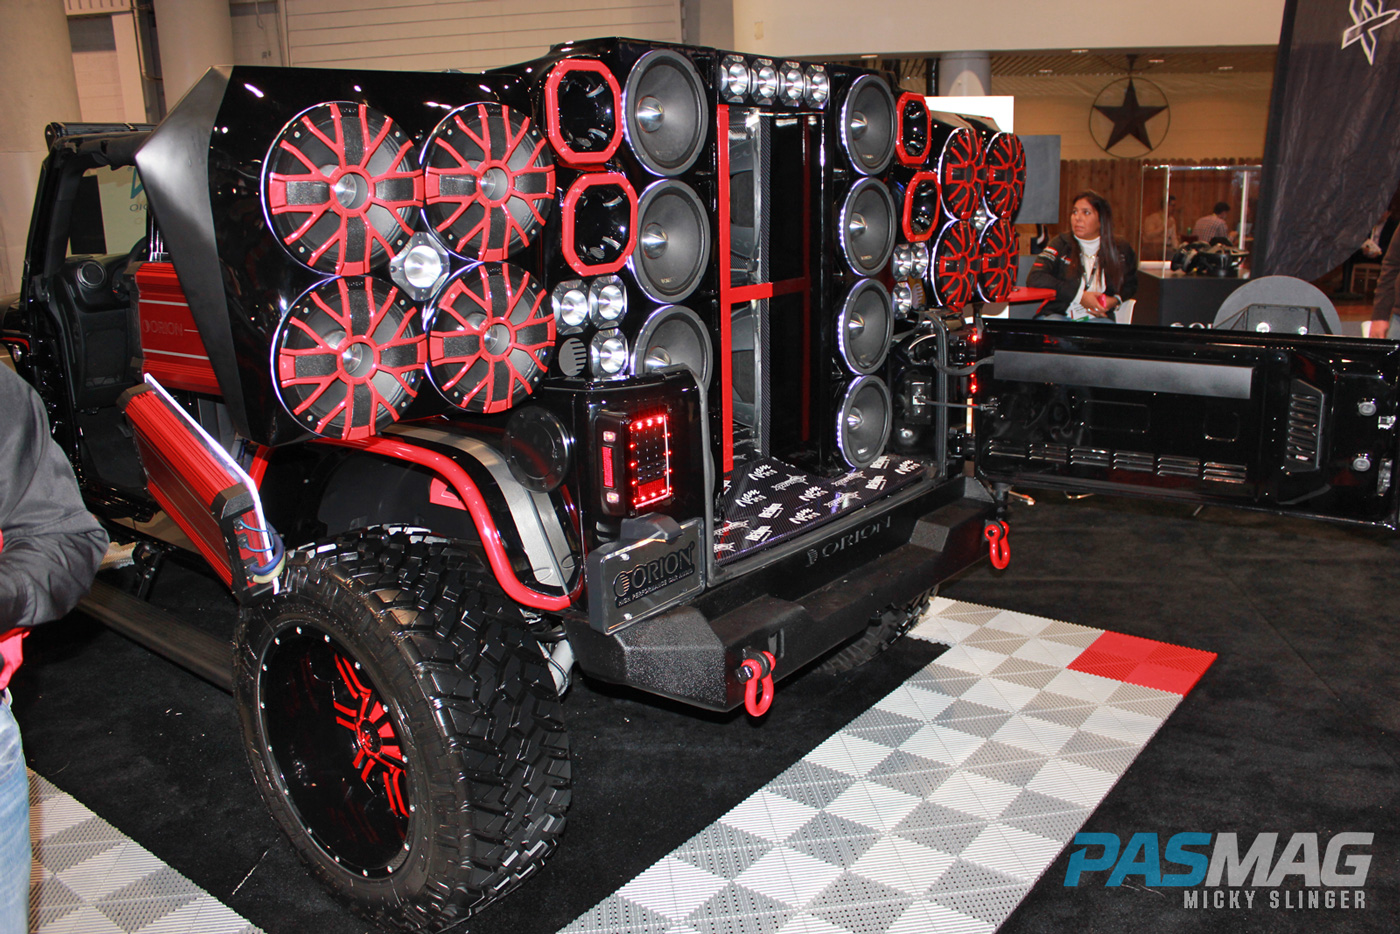 PASMAG CES 2015 Las Vegas NV Orion Jeep rear